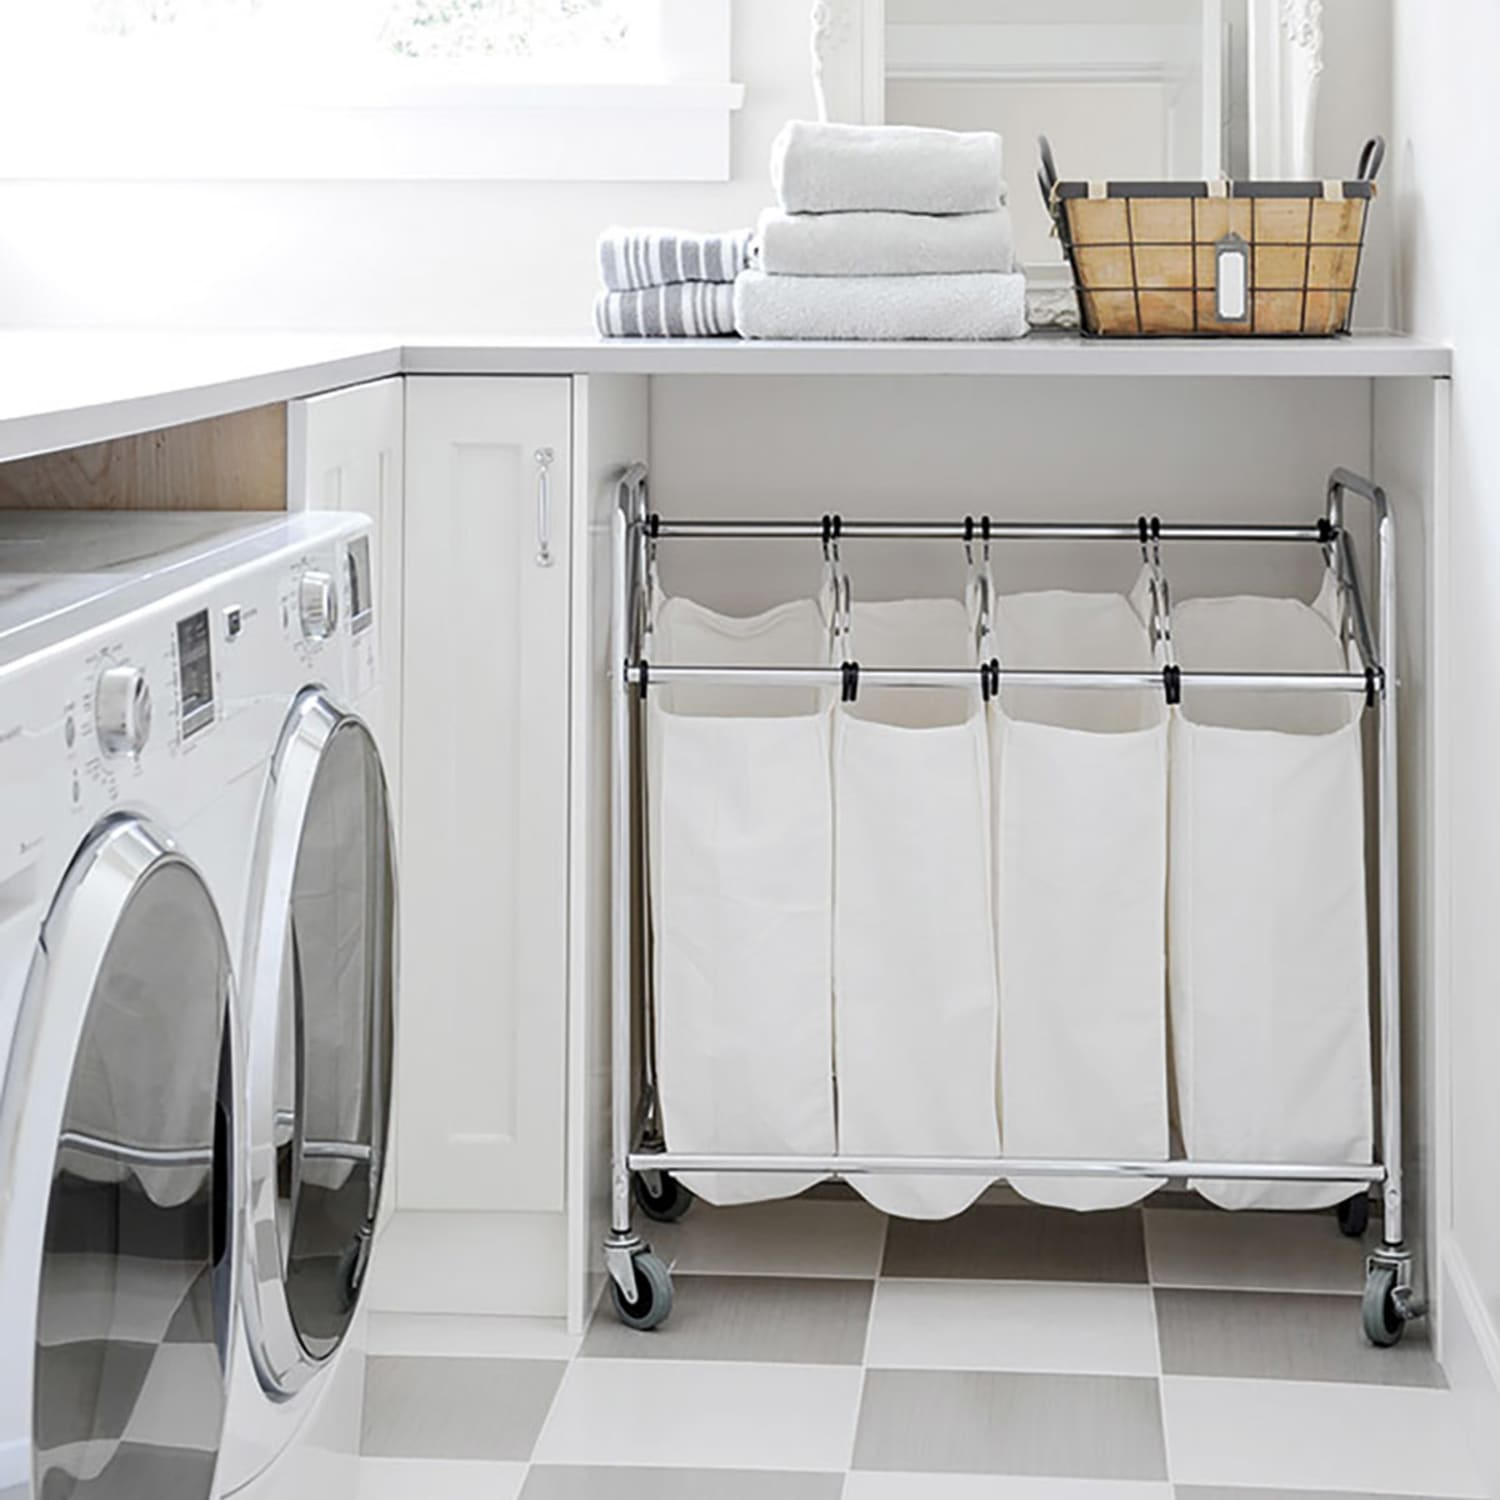 Clever Ideas to Make the Most of a Small Laundry Room  Apartment